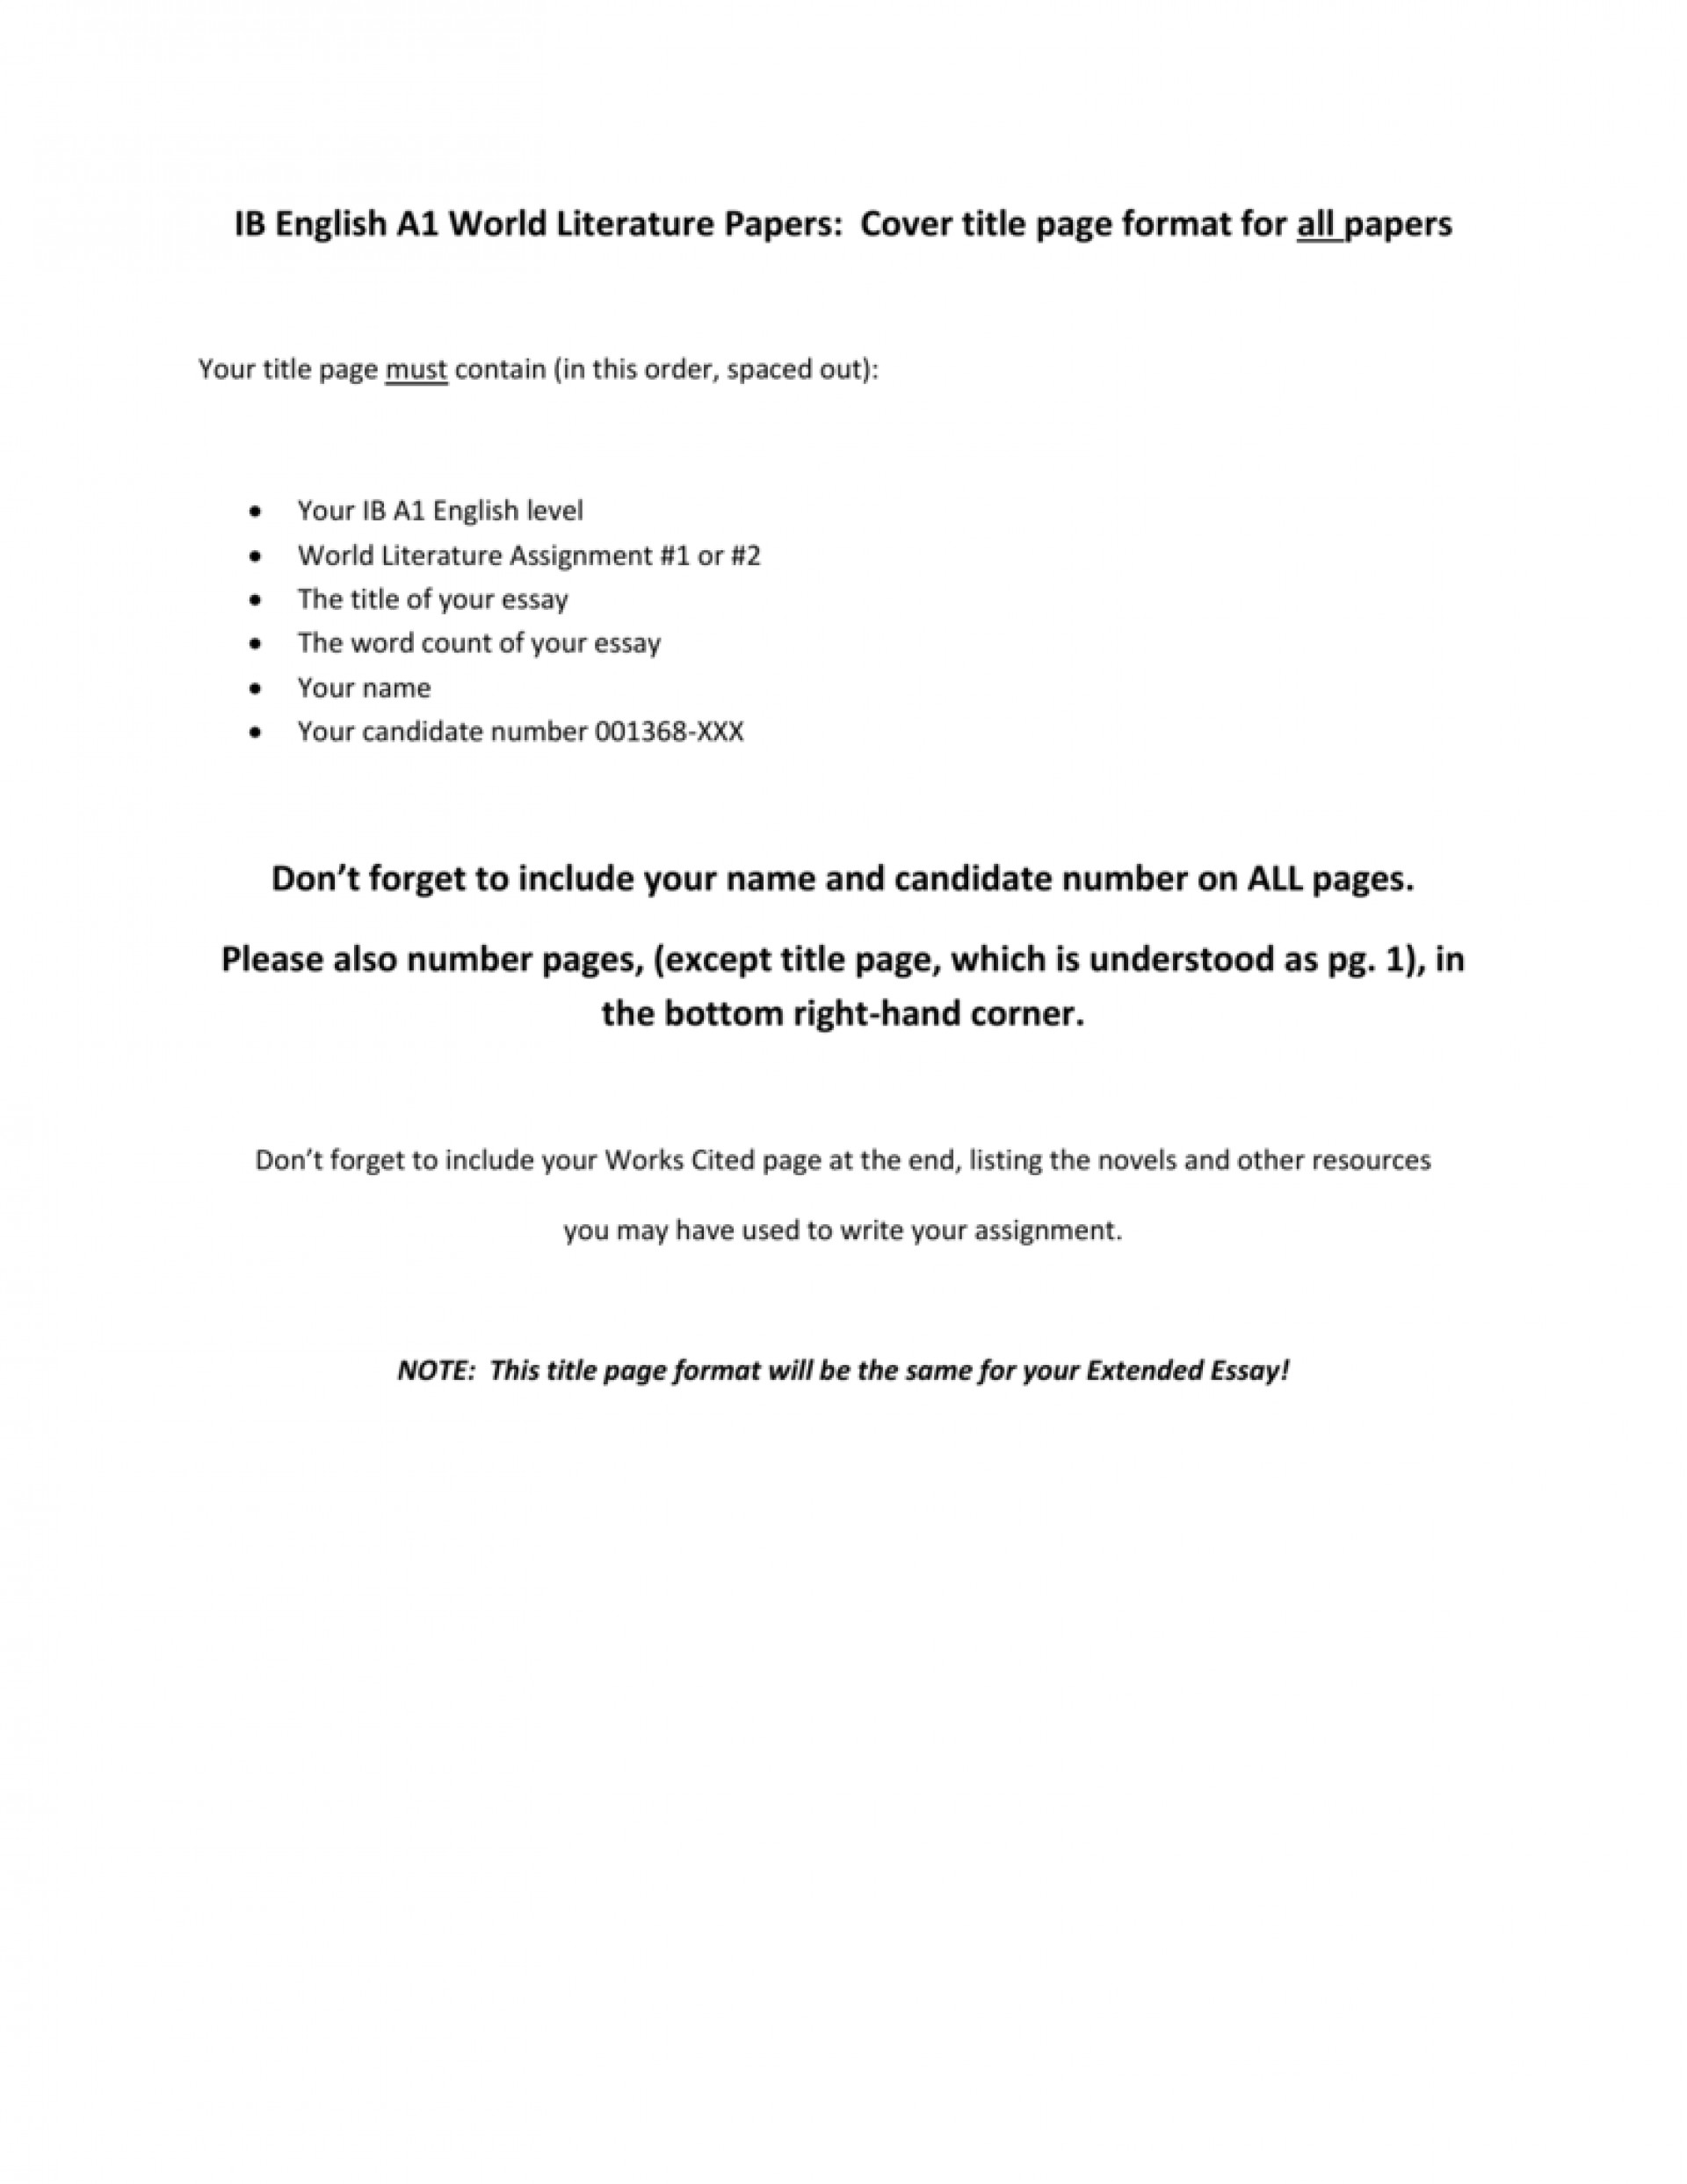 014 How To Write Numbers In An Essay Example 009545950 1 Frightening Do You Correct Way 1920